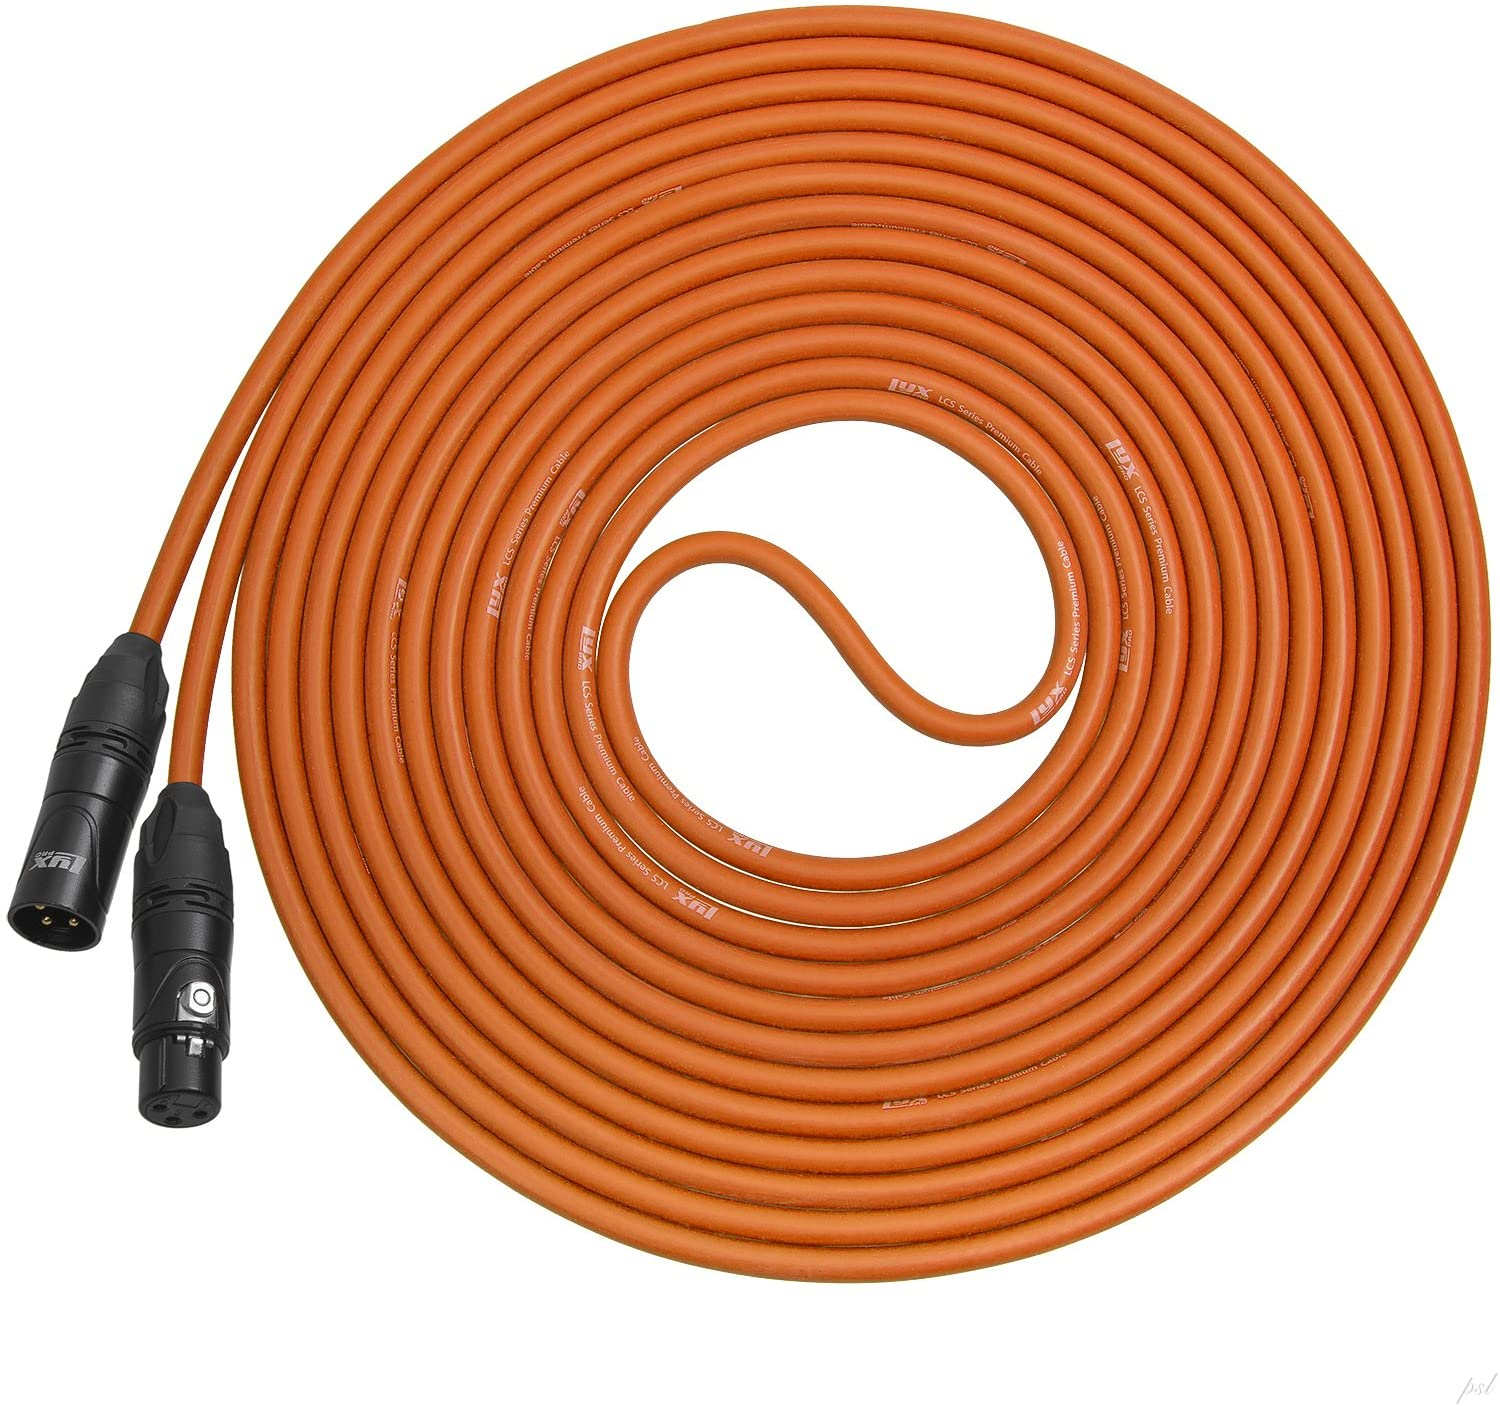 LyxPro 30 Feet XLR Microphone Cable Balanced Male to Female 3 Pin Mic Cord for Powered Speakers Audio Interface Professional Pro Audio Performance and Recording Devices - Orange